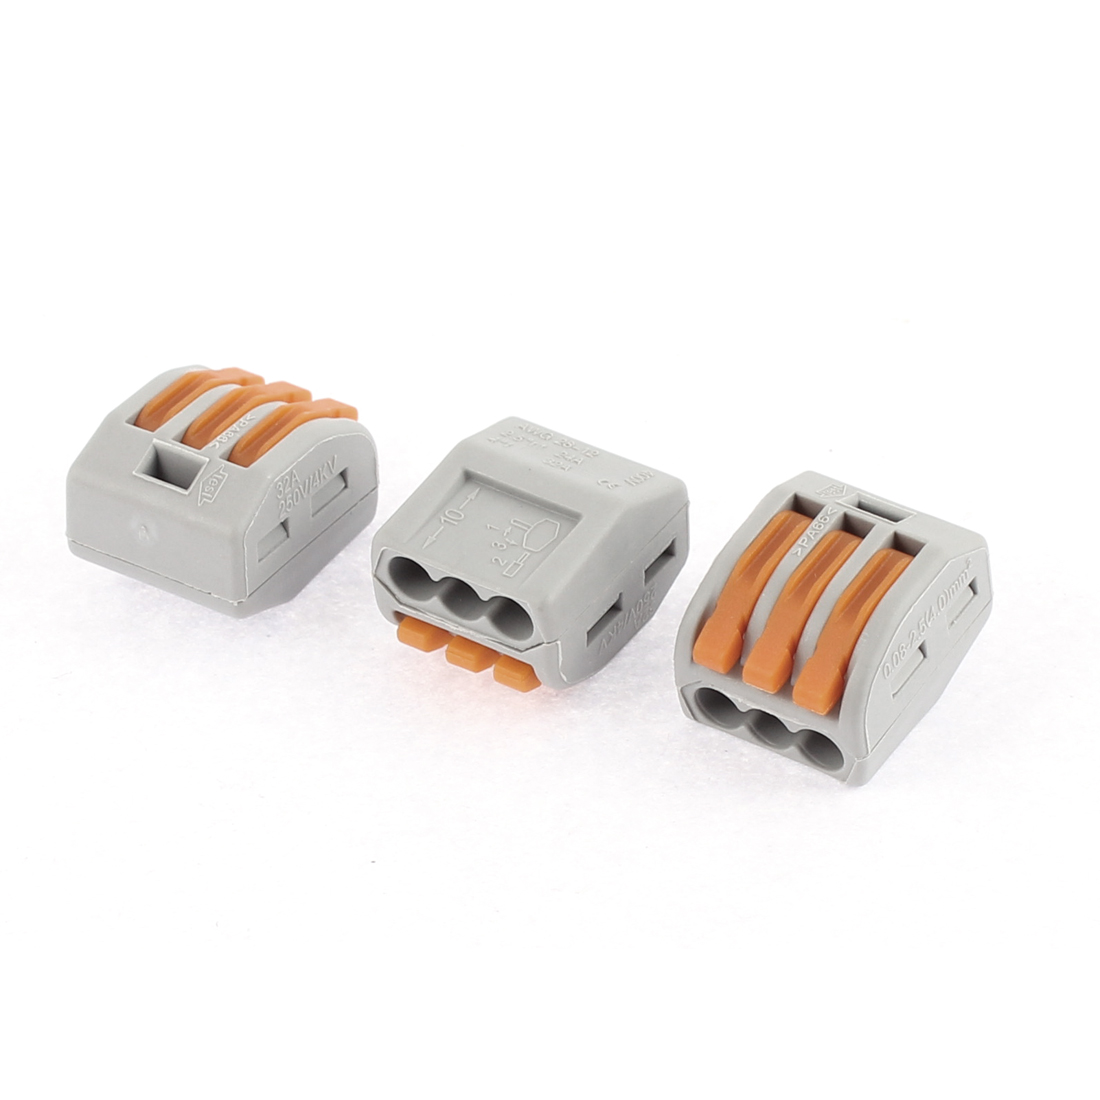 AC 250V 32A Lever Lock 3 Pole Push Cable Wire Connector Terminal Block 3 Pcs